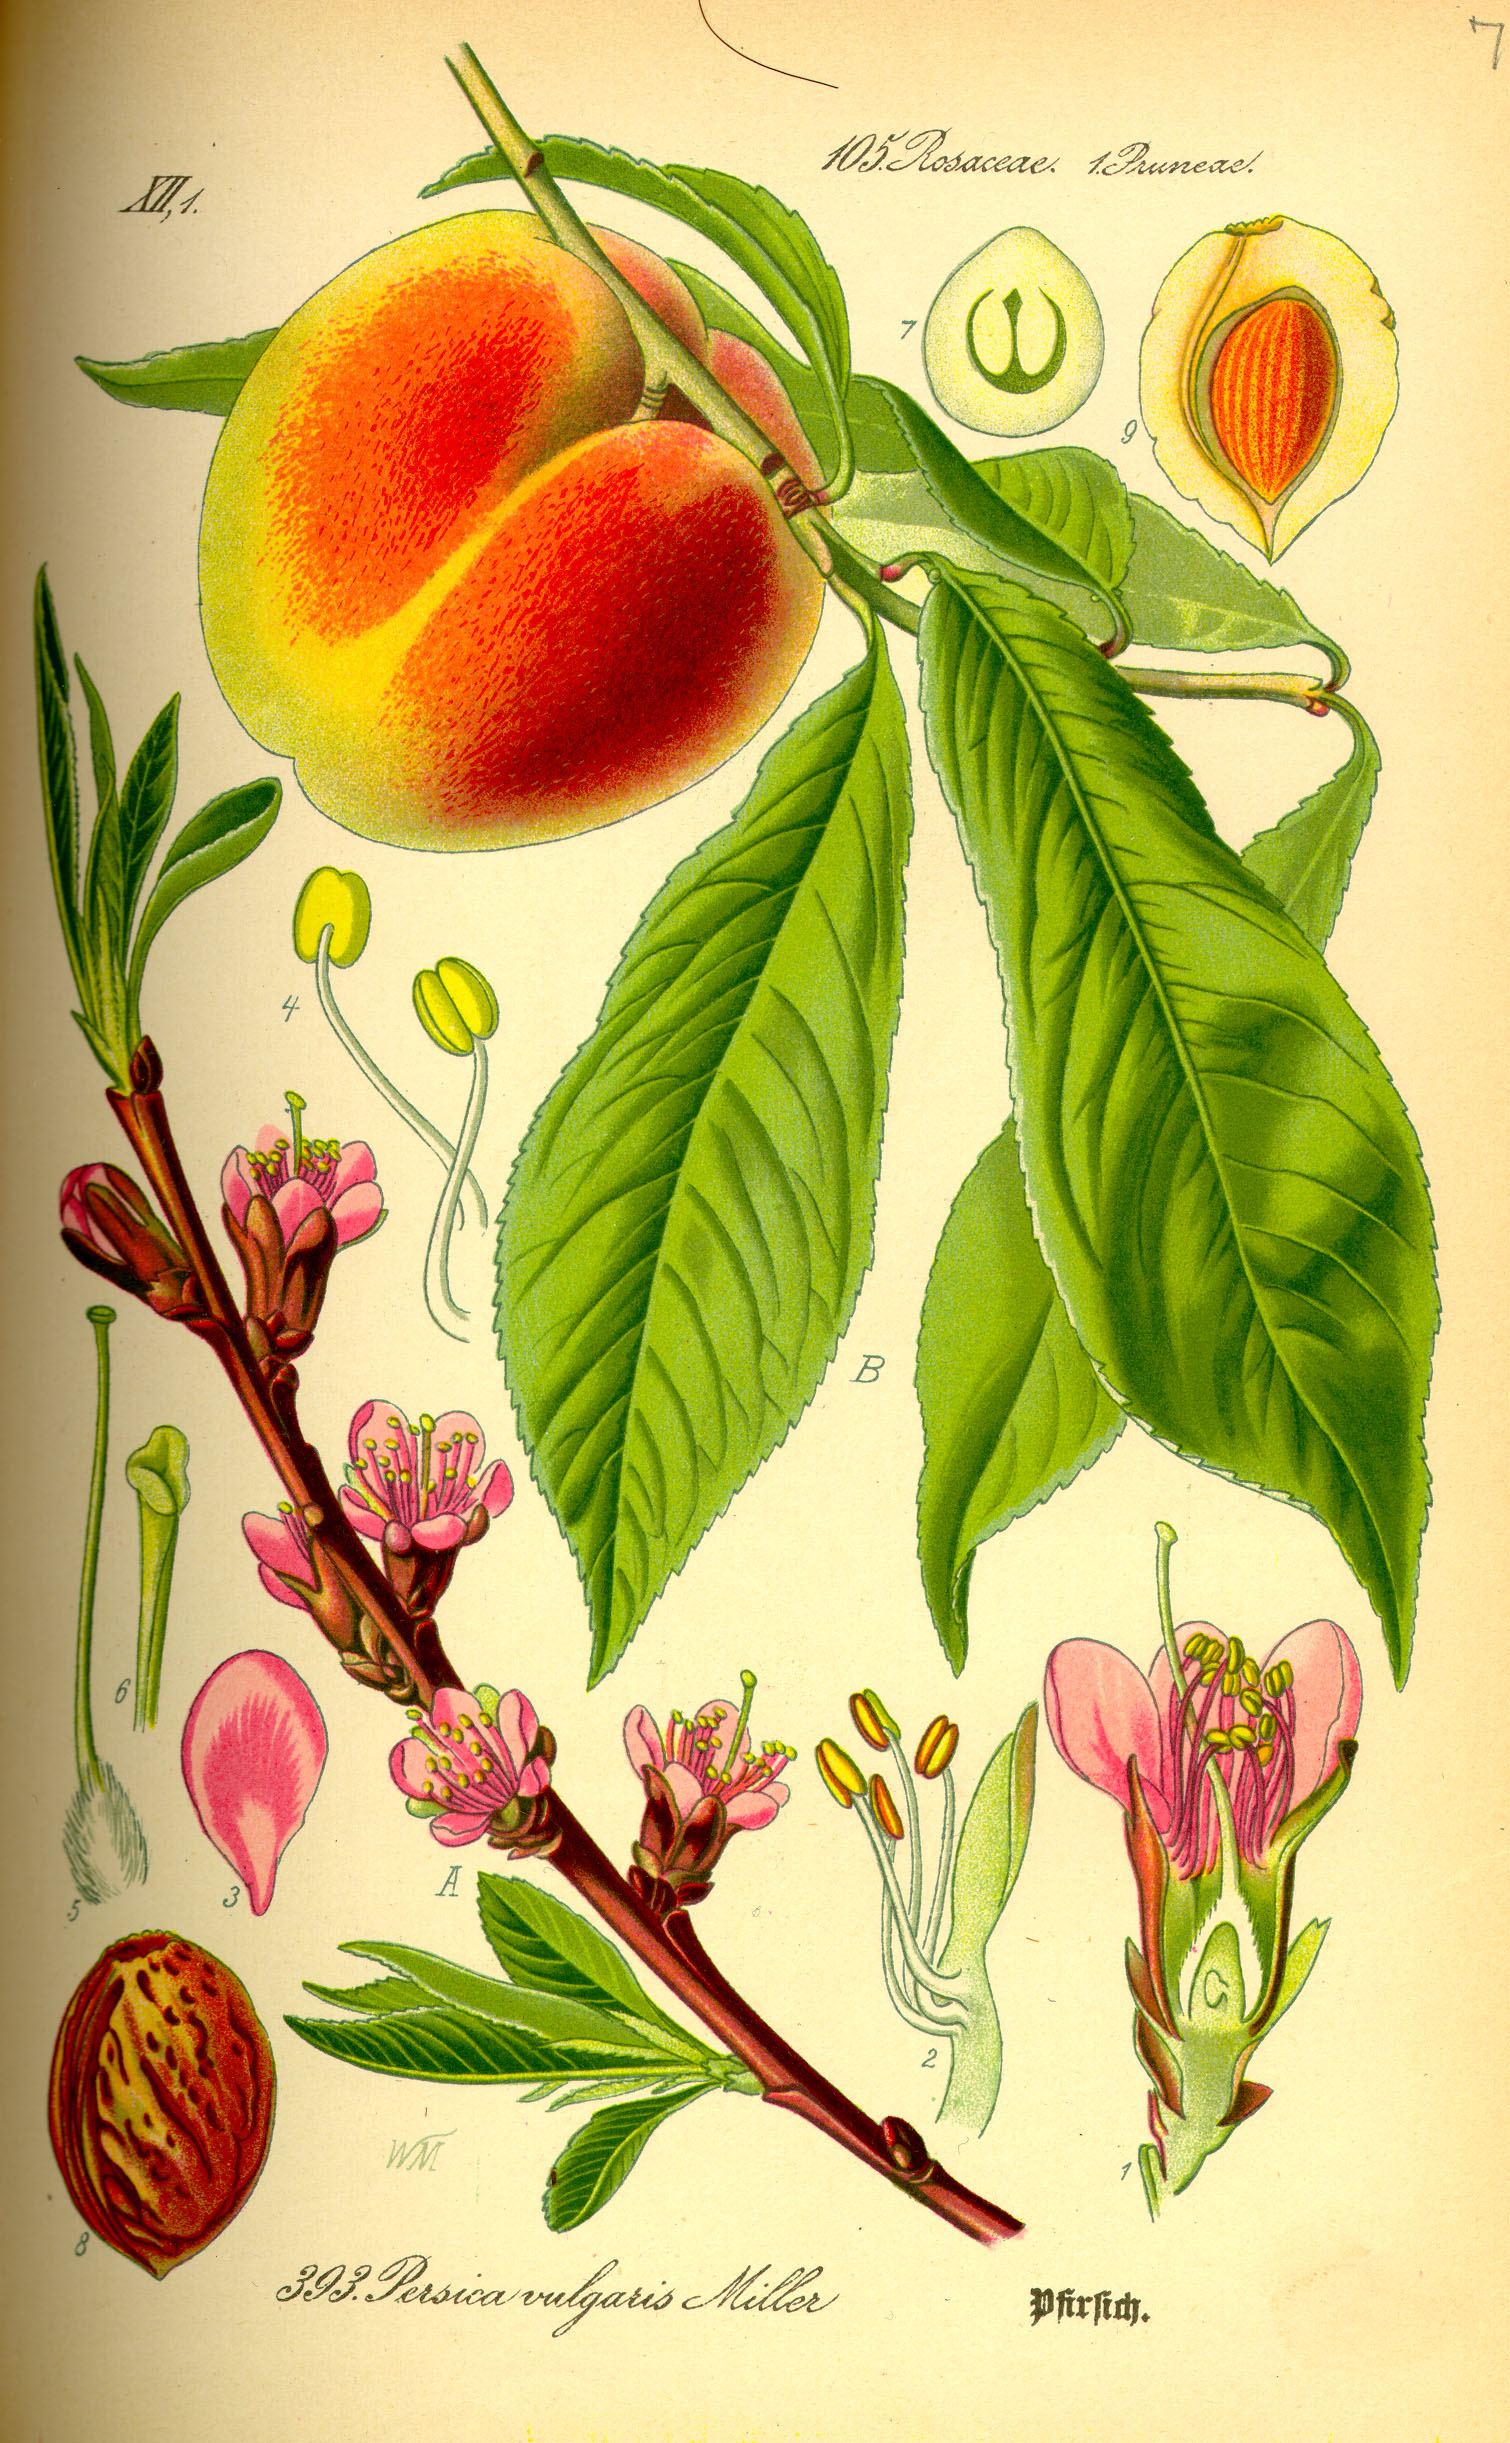 http://upload.wikimedia.org/wikipedia/commons/d/de/Illustration_Prunus_persica0.jpg